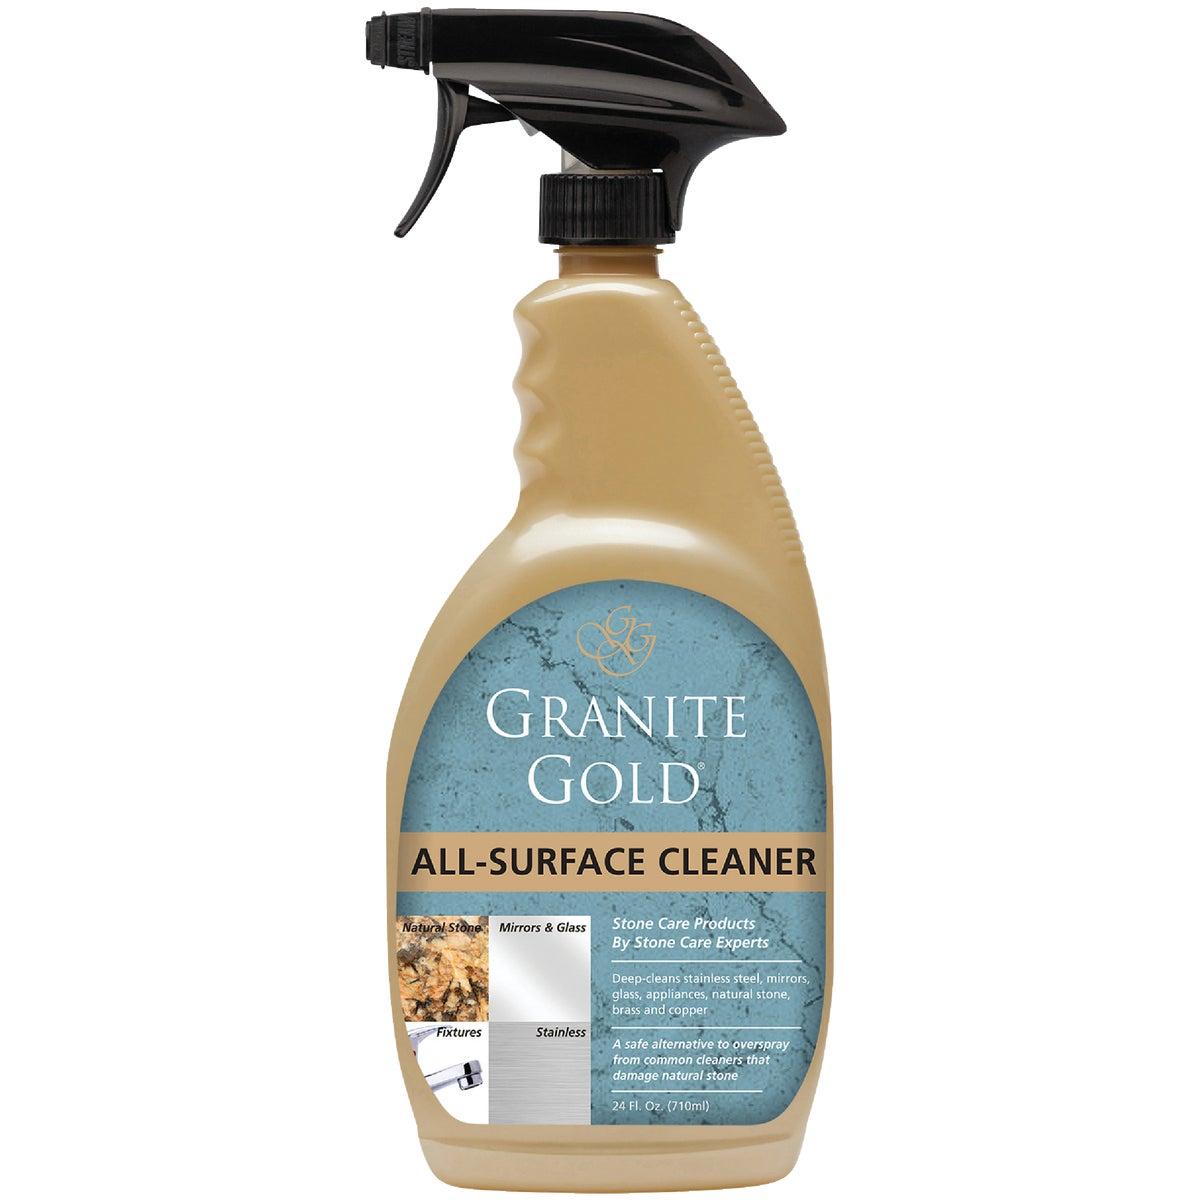 24OZ ALL-SURFACE CLEANER